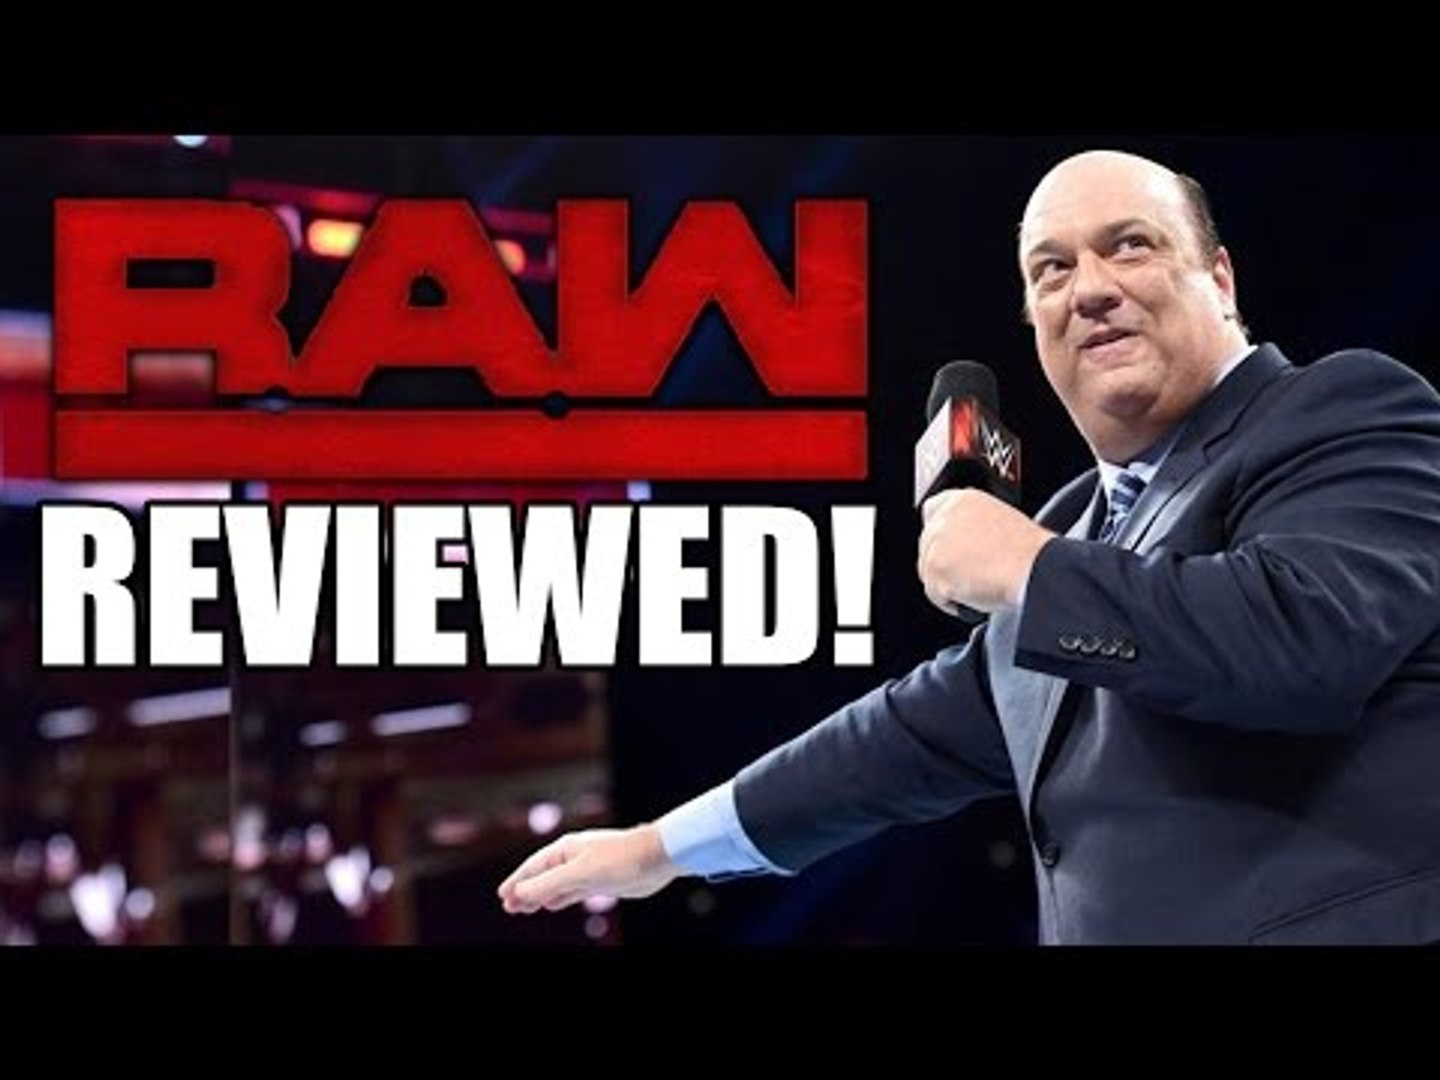 MASSIVE WWE Return Confirmed! Everything Is Hell In A Cell Now... | WWE RAW 10/10/16 Review